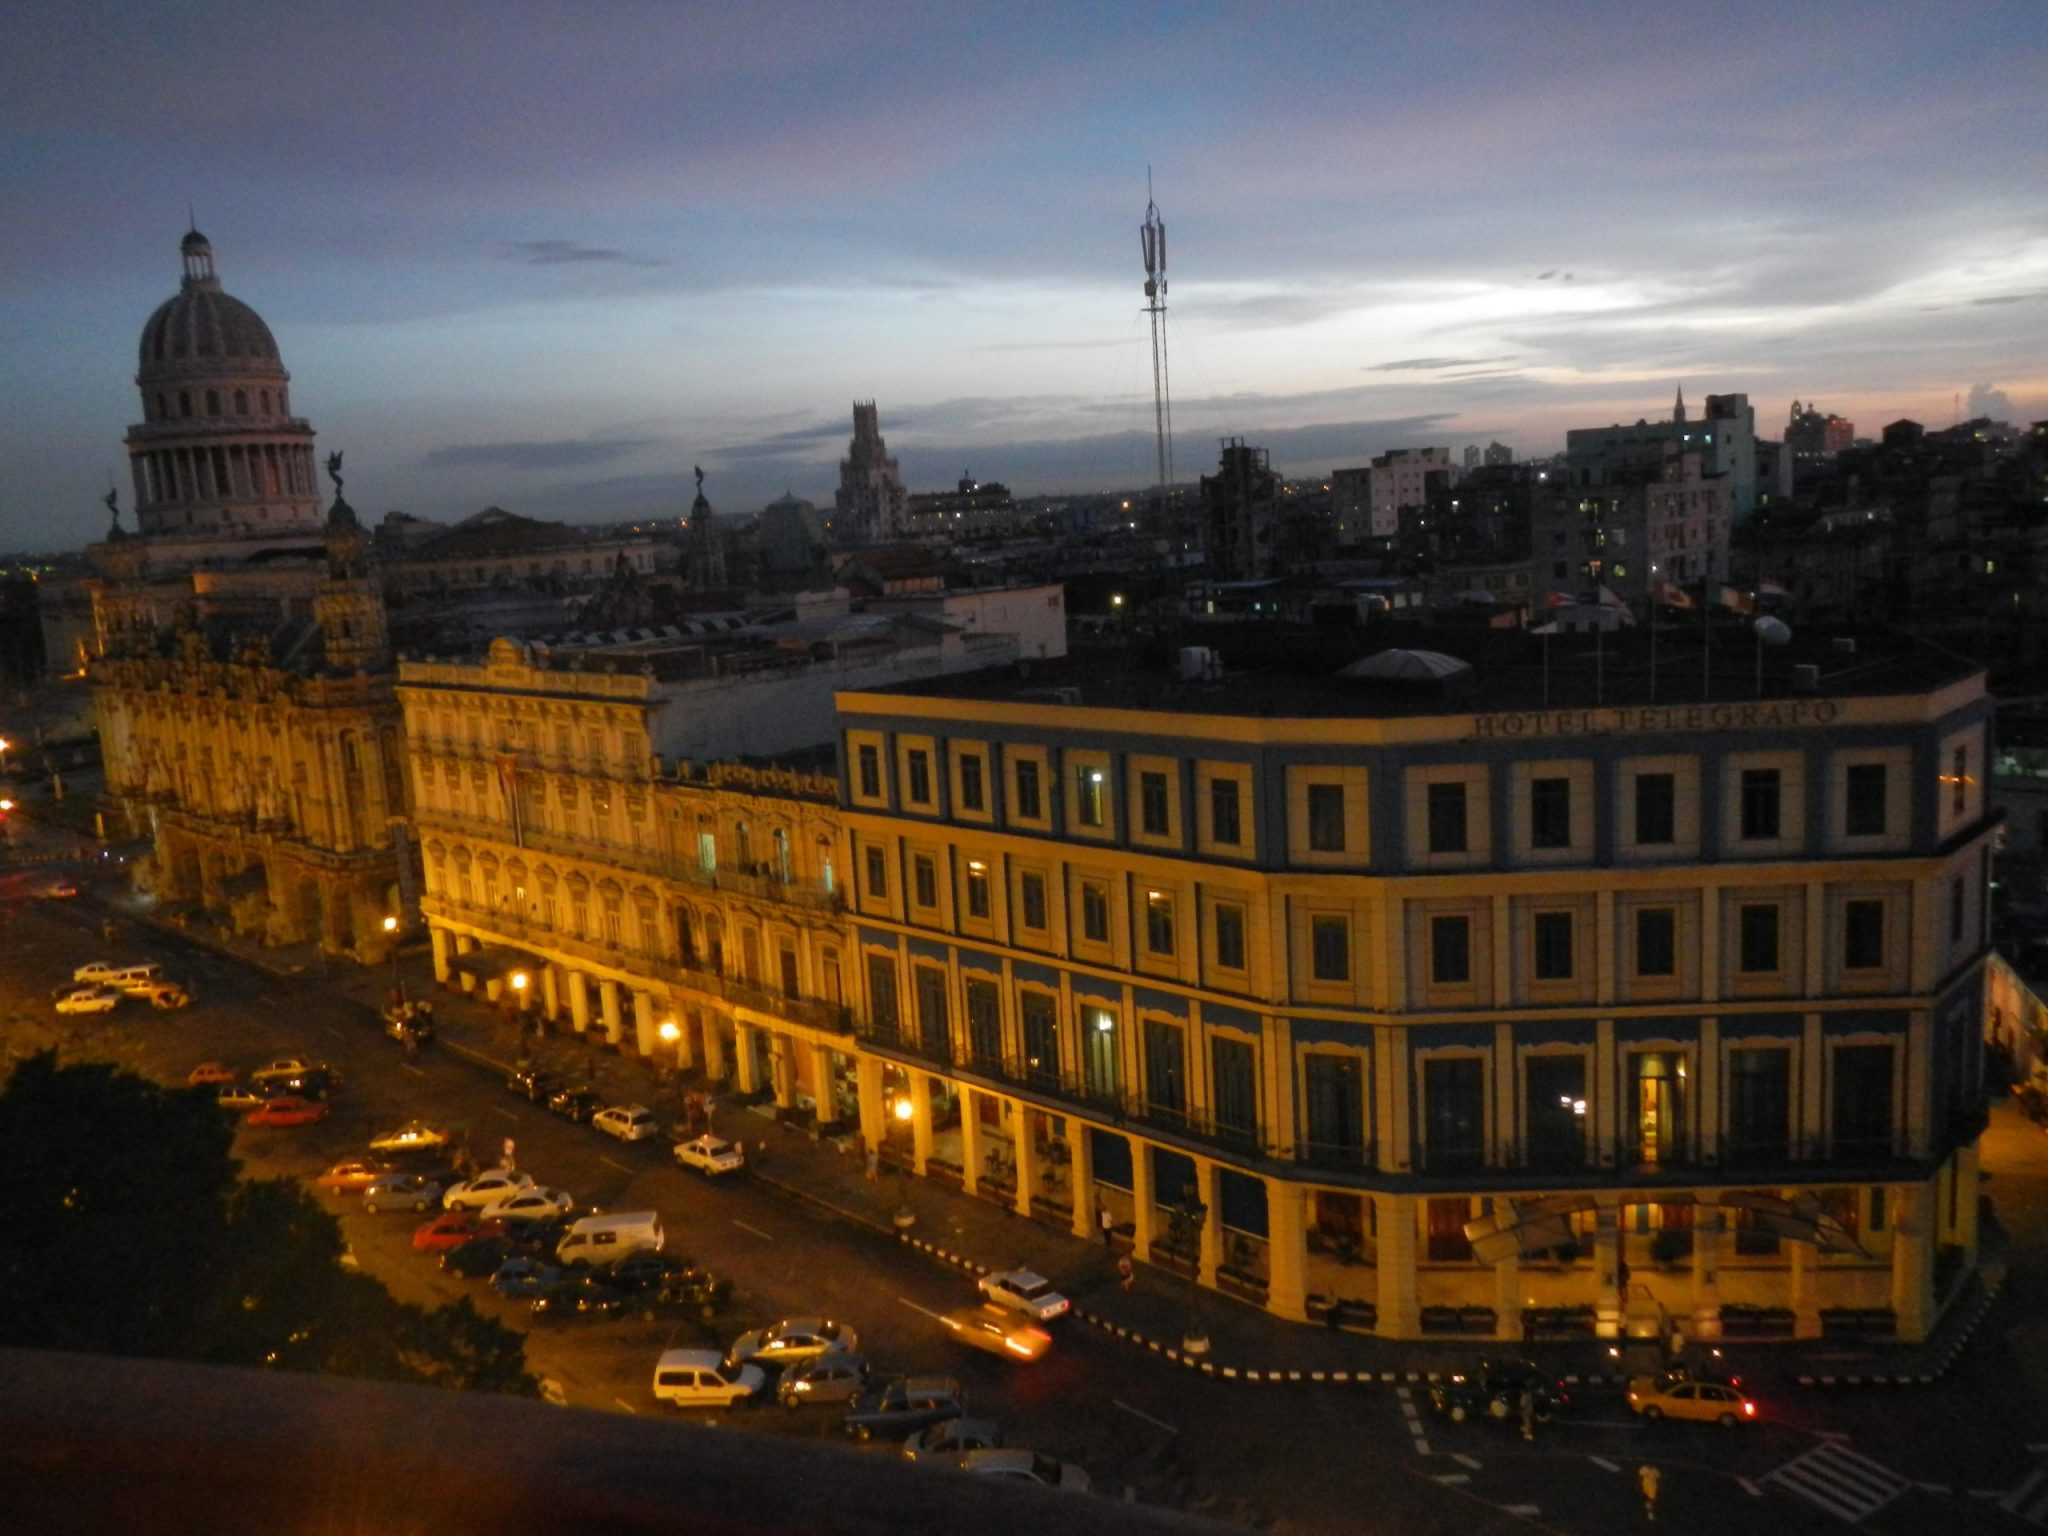 Early evening in Havana